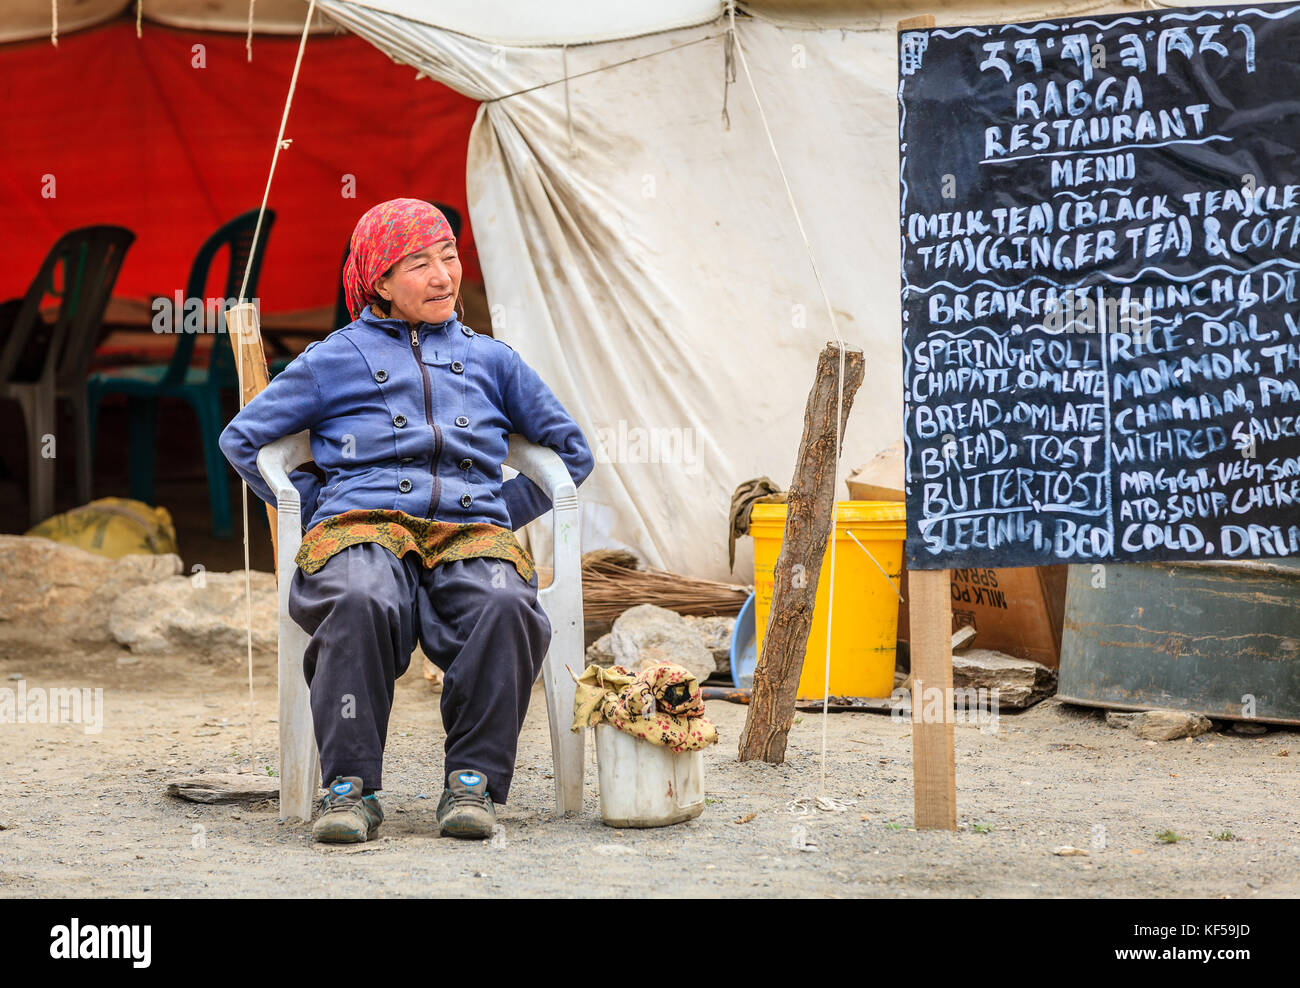 Ladakh, India, July 16, 2016: local woman sits by the menu sign of a roadside canteen in Changthang plateau Ladakh, - Stock Image